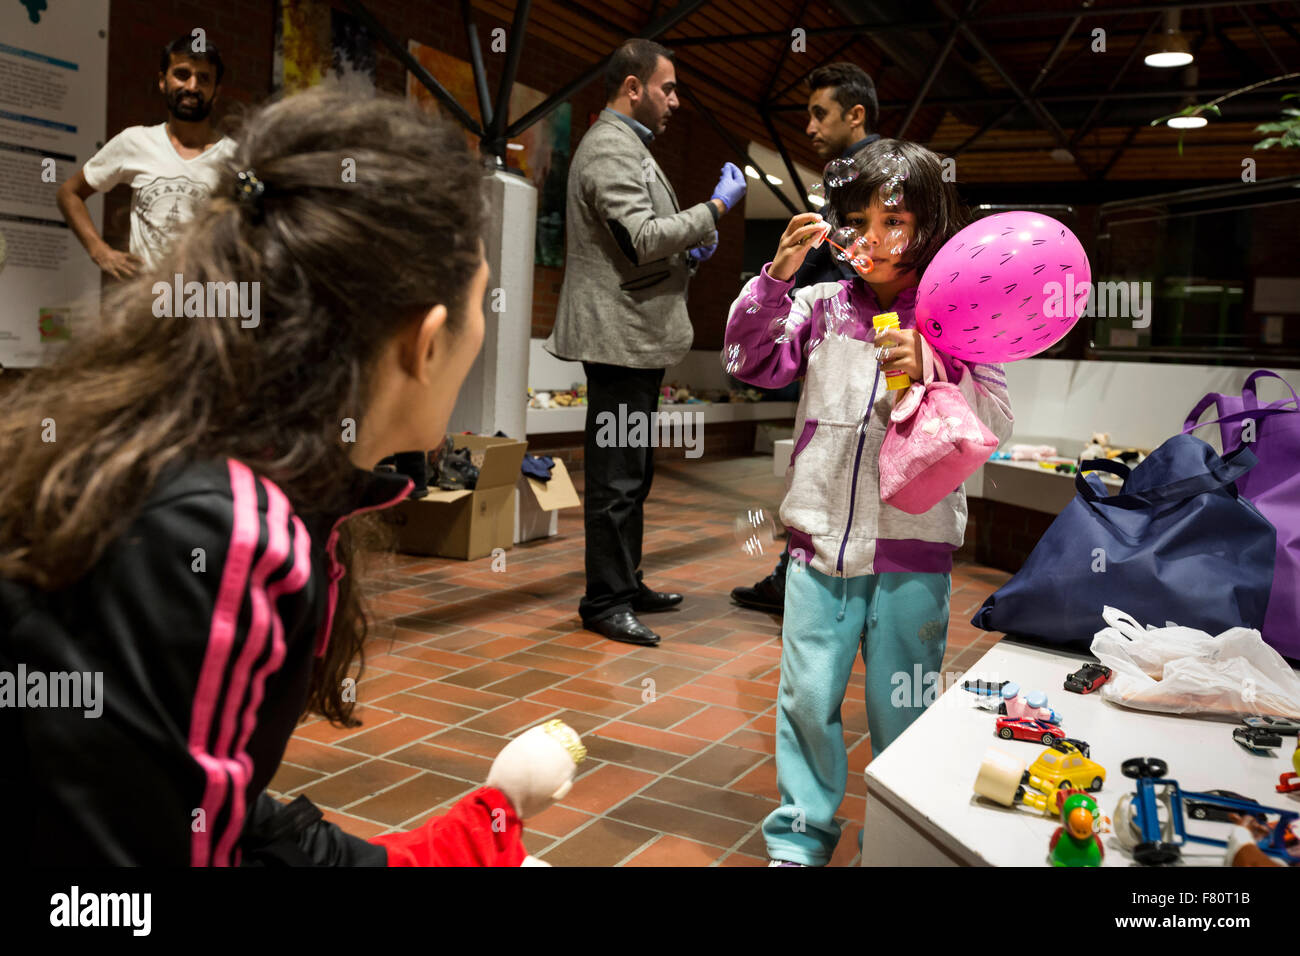 In the refugee arrival in Dortmund Keuning house the refugees of volunteers are supplied with food and clothing. - Stock Image